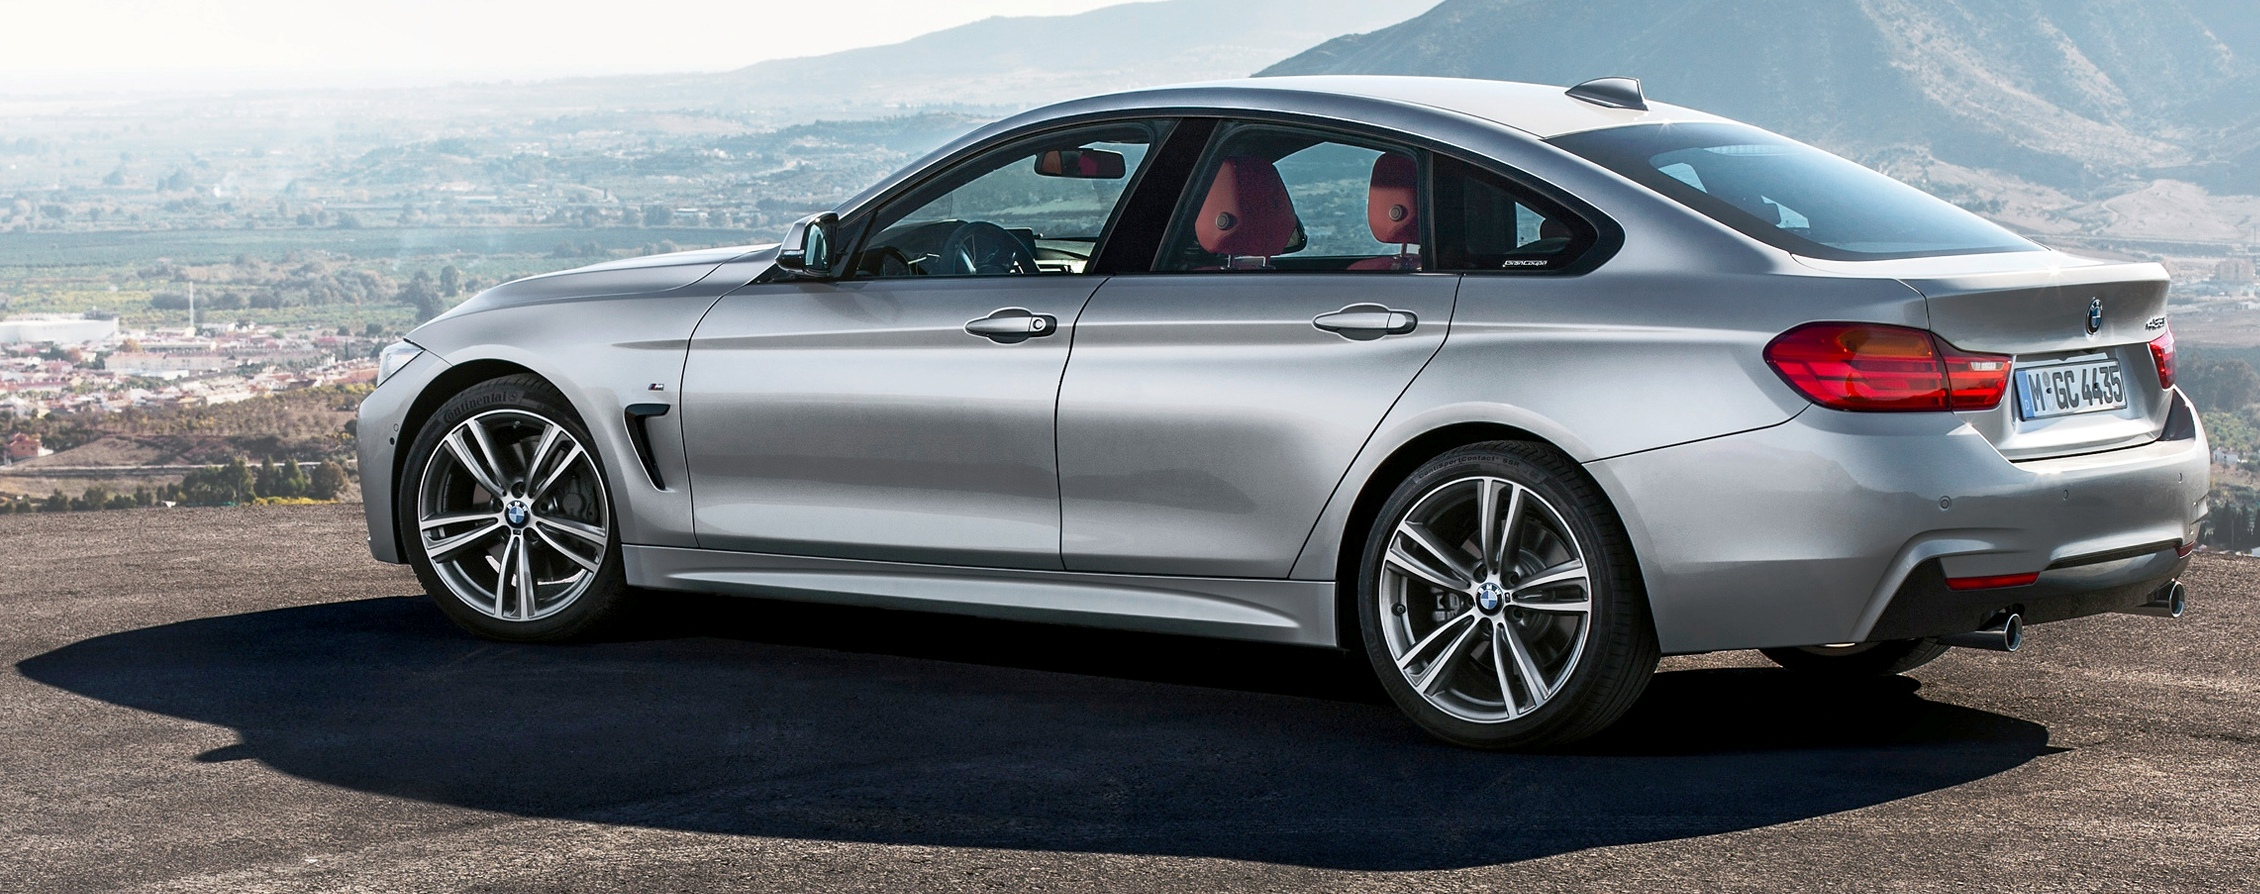 2016 Bmw 4 Series Gran Coupe #3